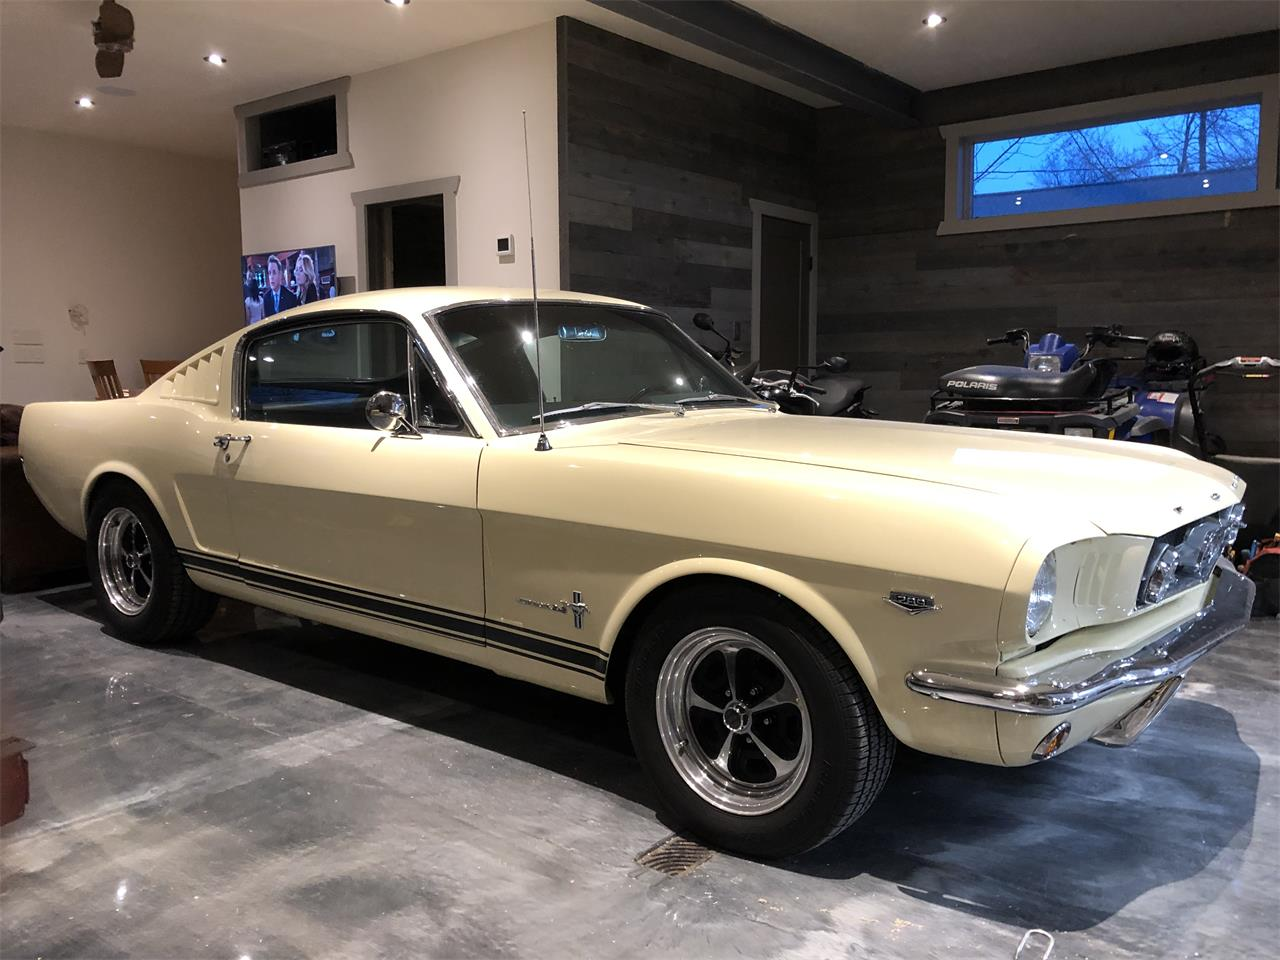 Large Picture of '65 Ford Mustang located in Michigan - $74,900.00 Offered by a Private Seller - Q315